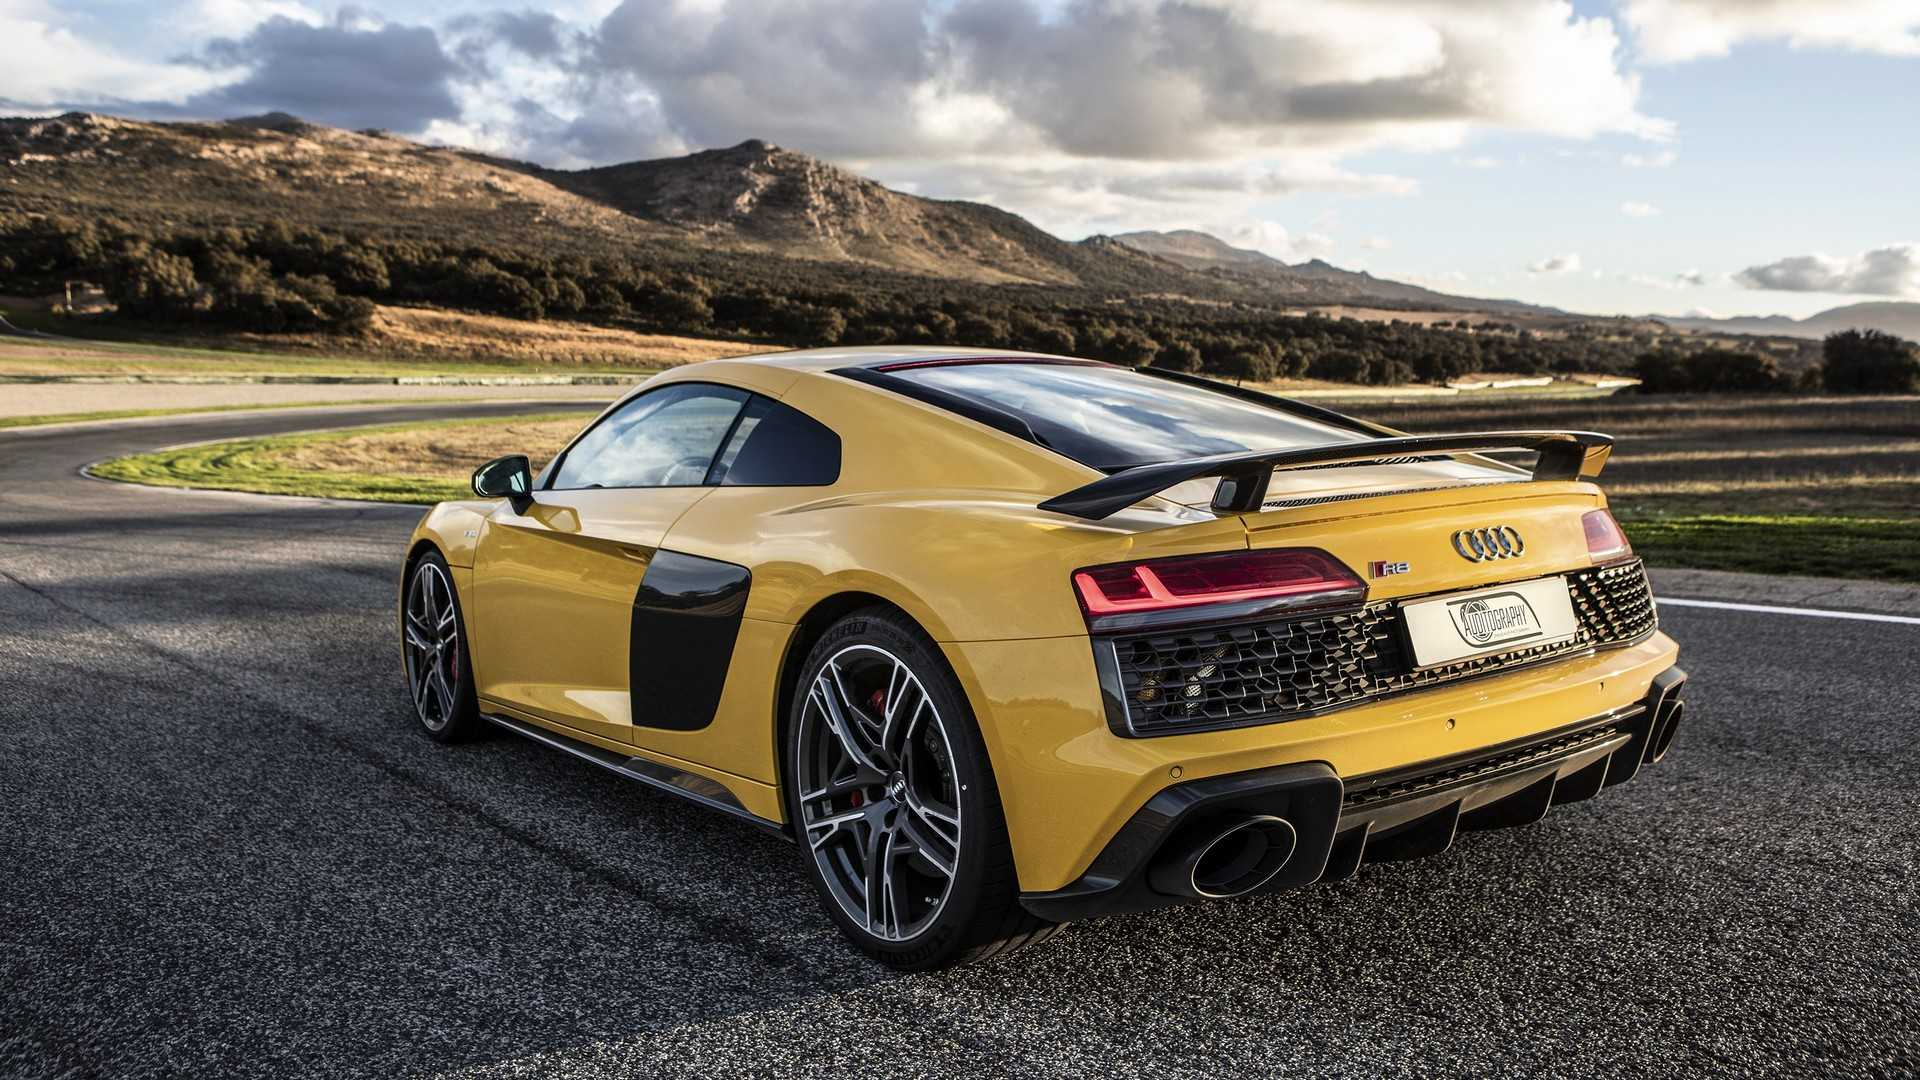 13 Gallery of 2020 Audi R8 V10 Performance Pricing with 2020 Audi R8 V10 Performance